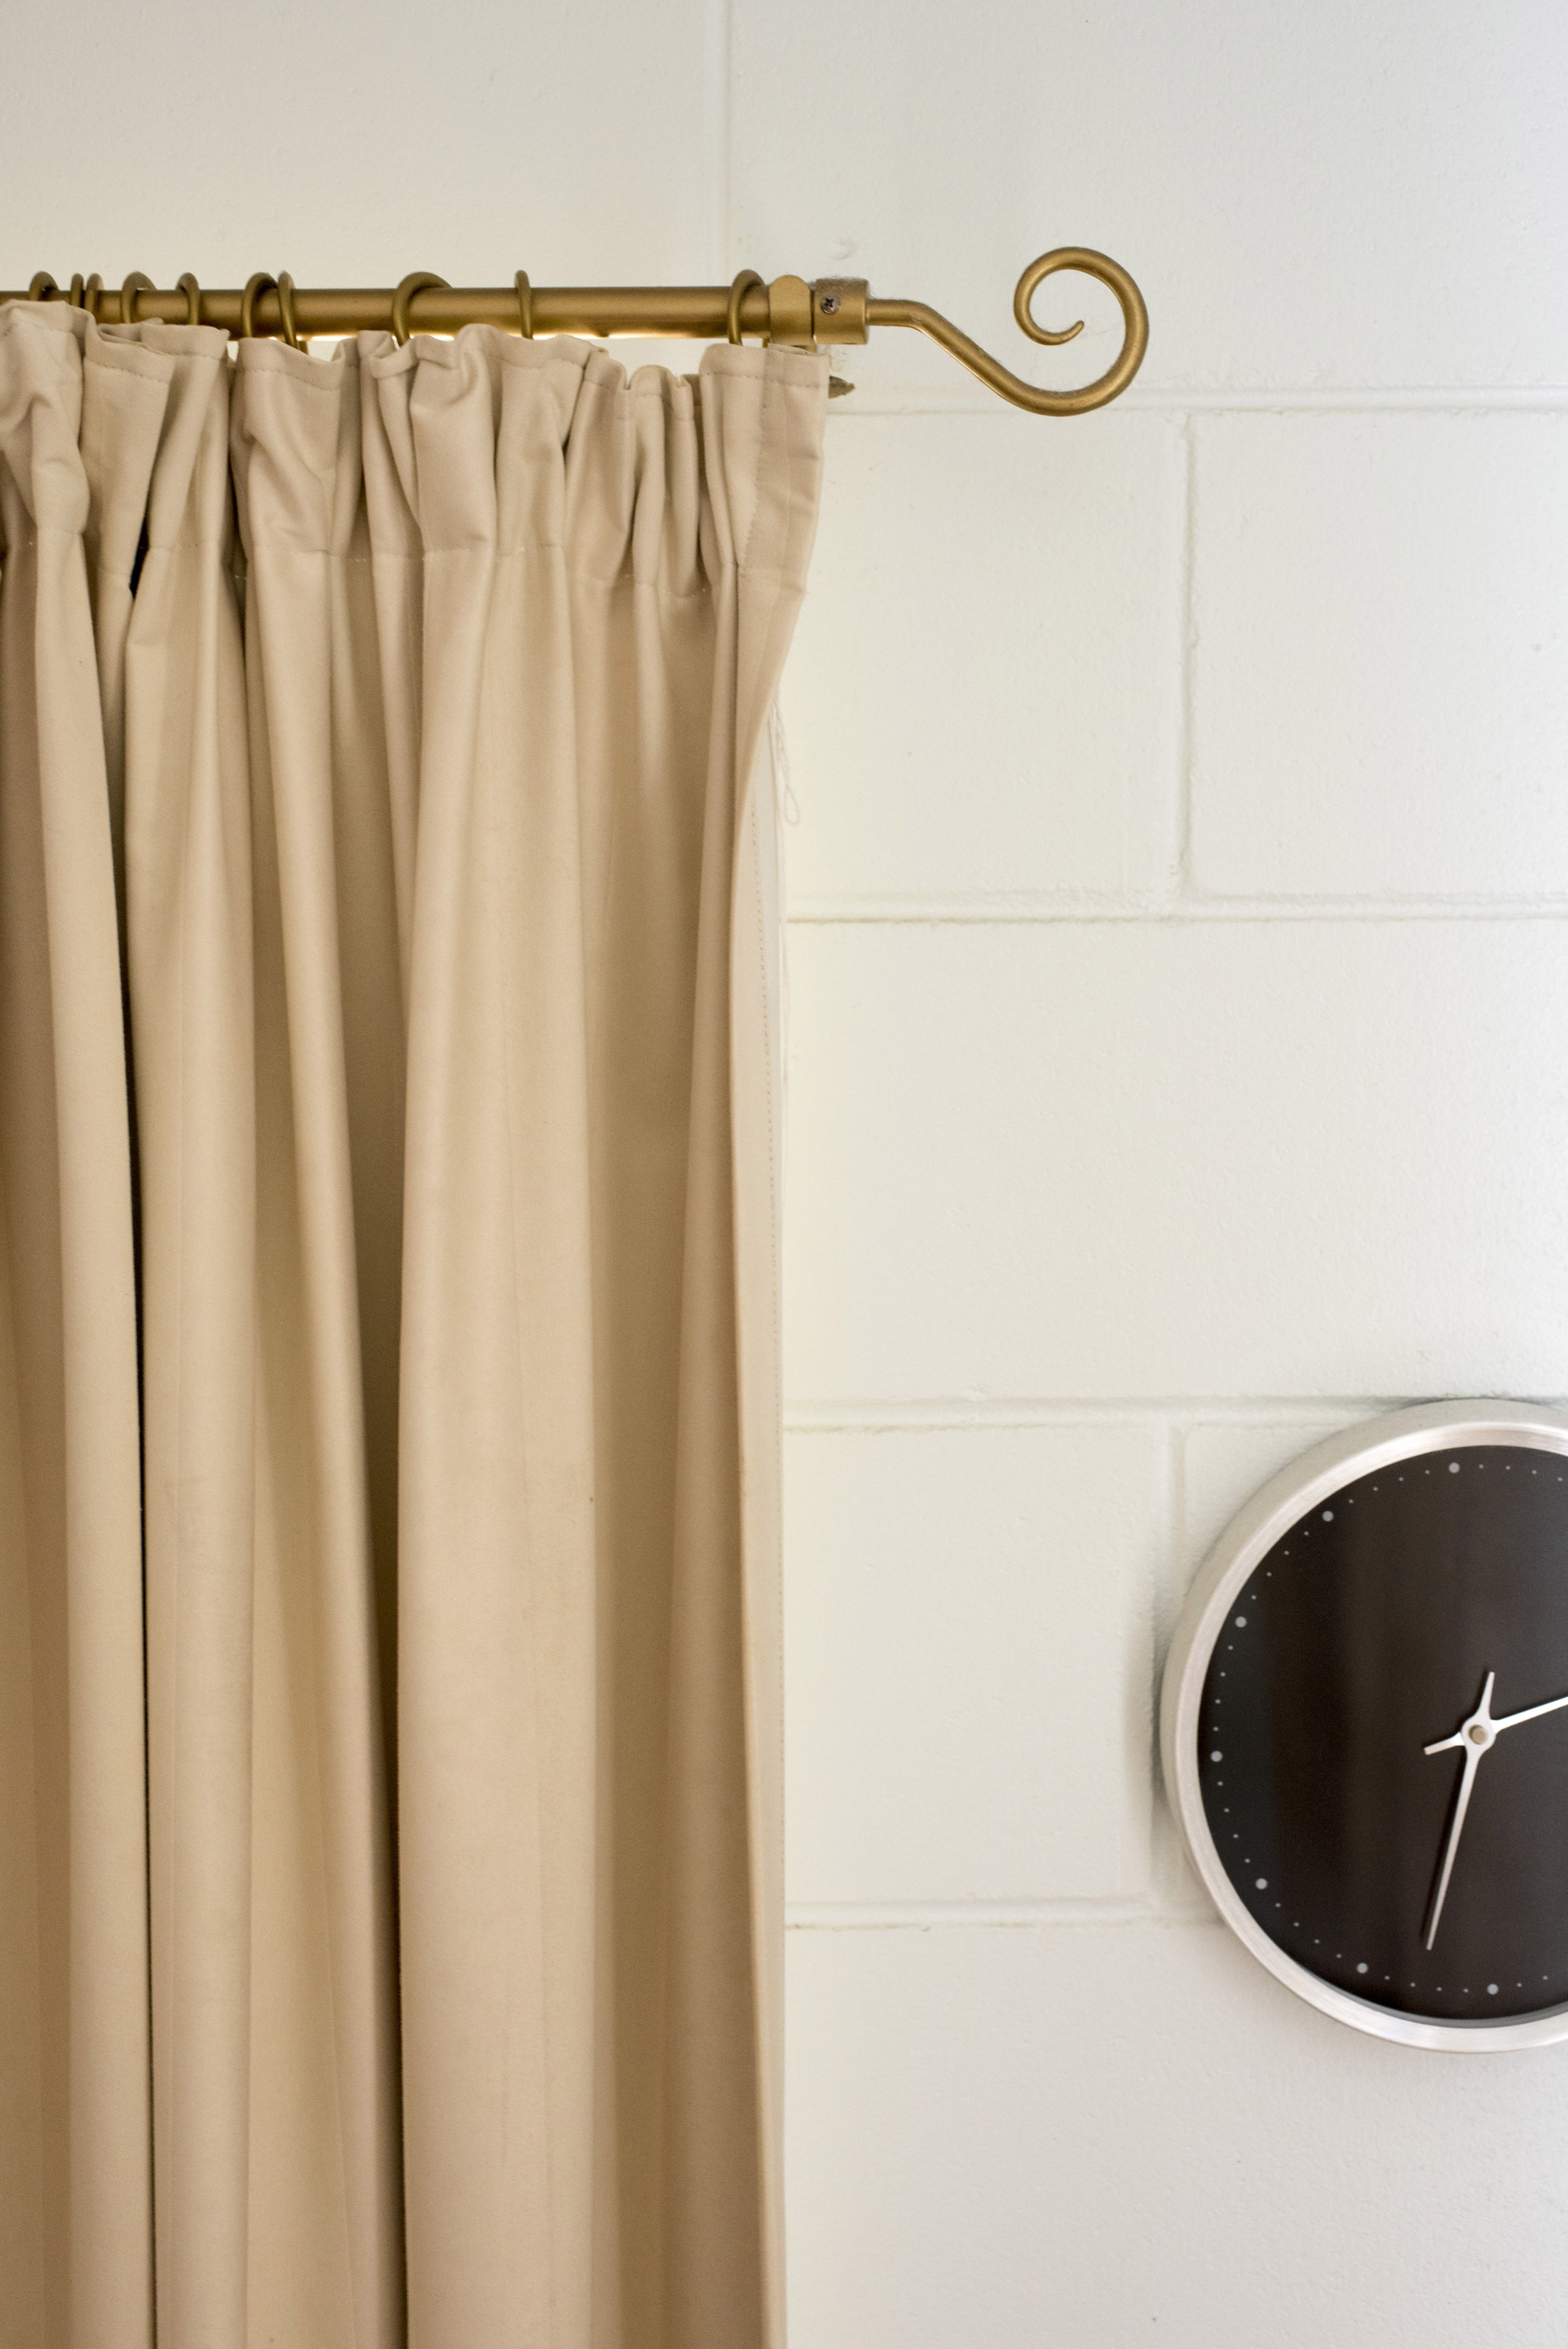 An Abstract Home Decor With Beige Curtain Rod And Black Clock Hanging On A White